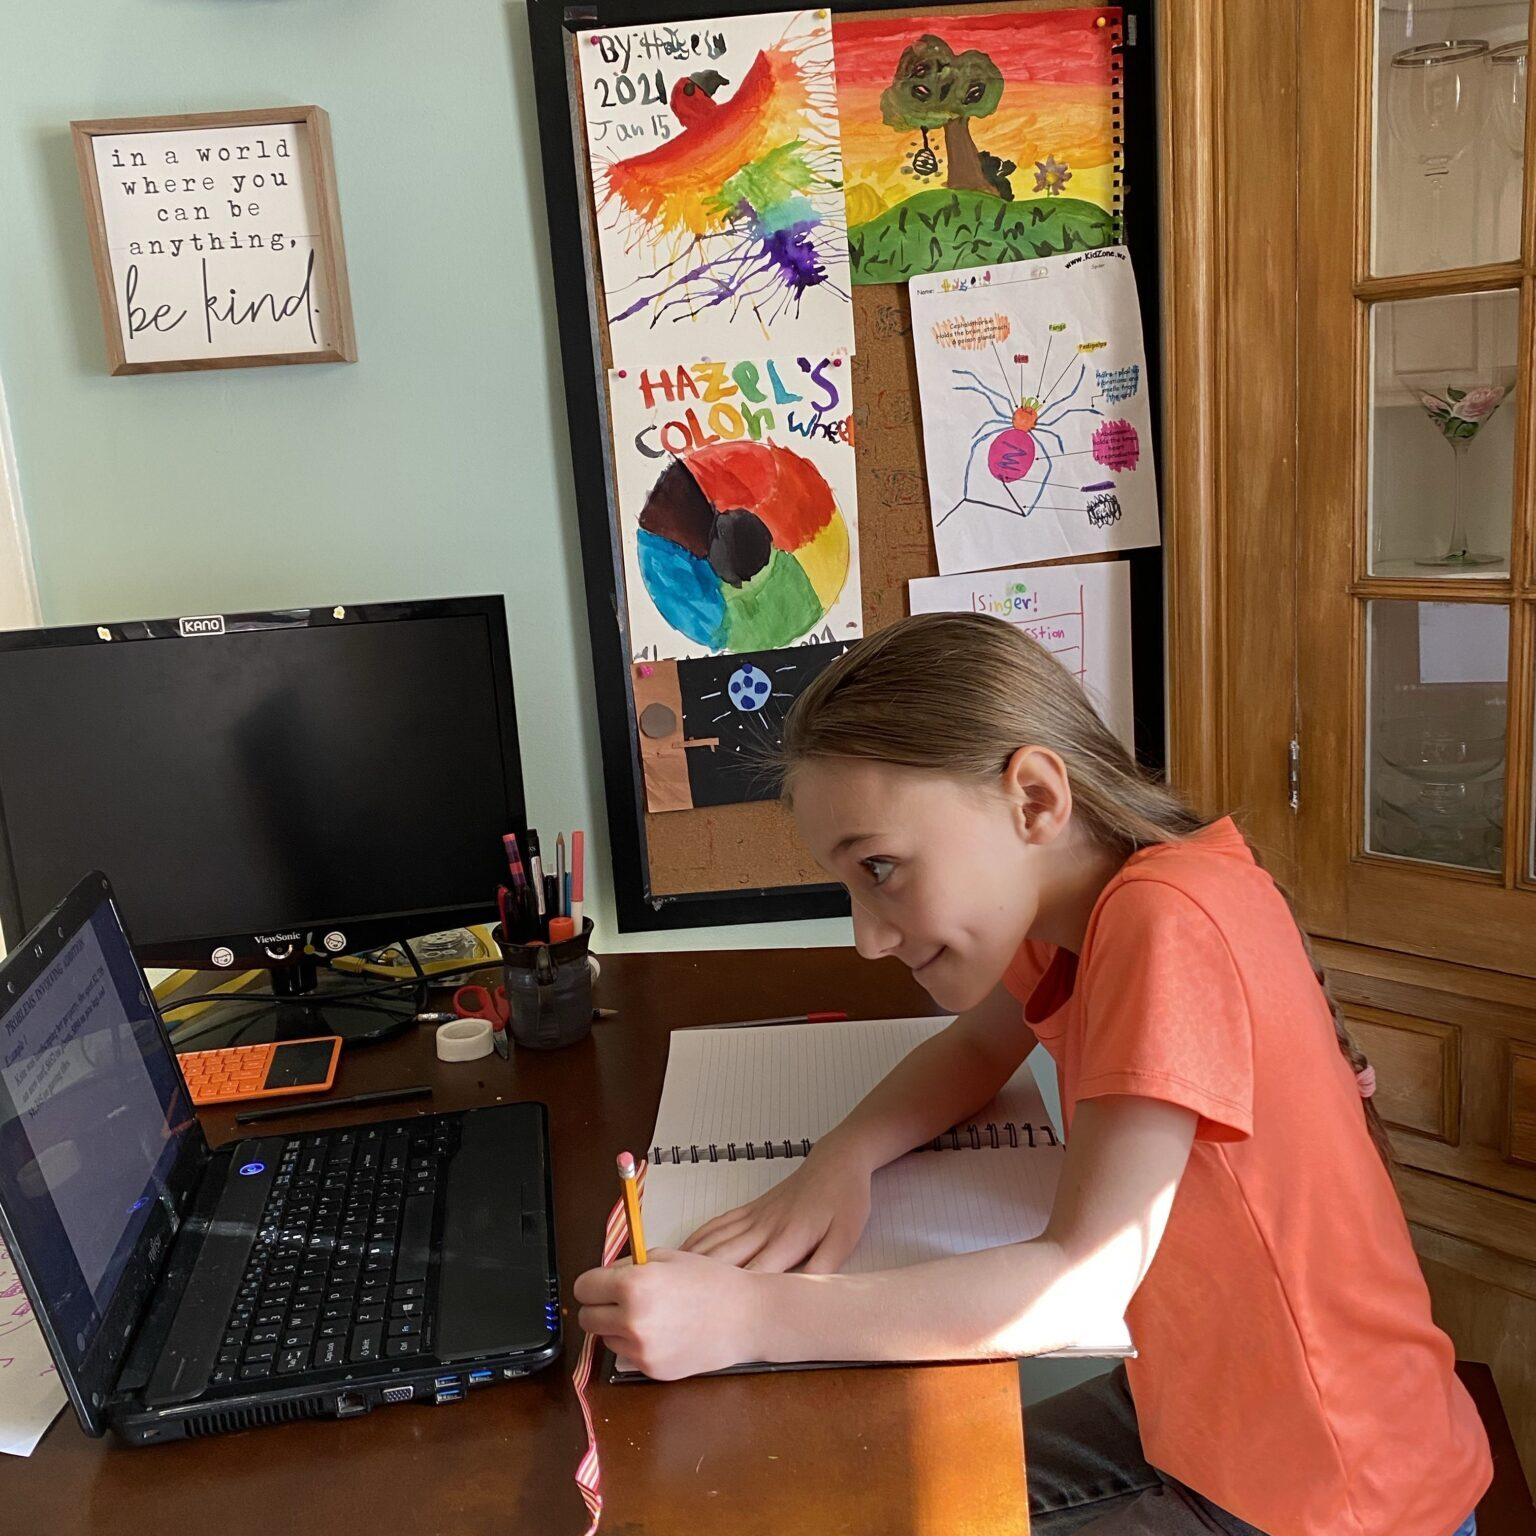 Young child sitting at computer learning